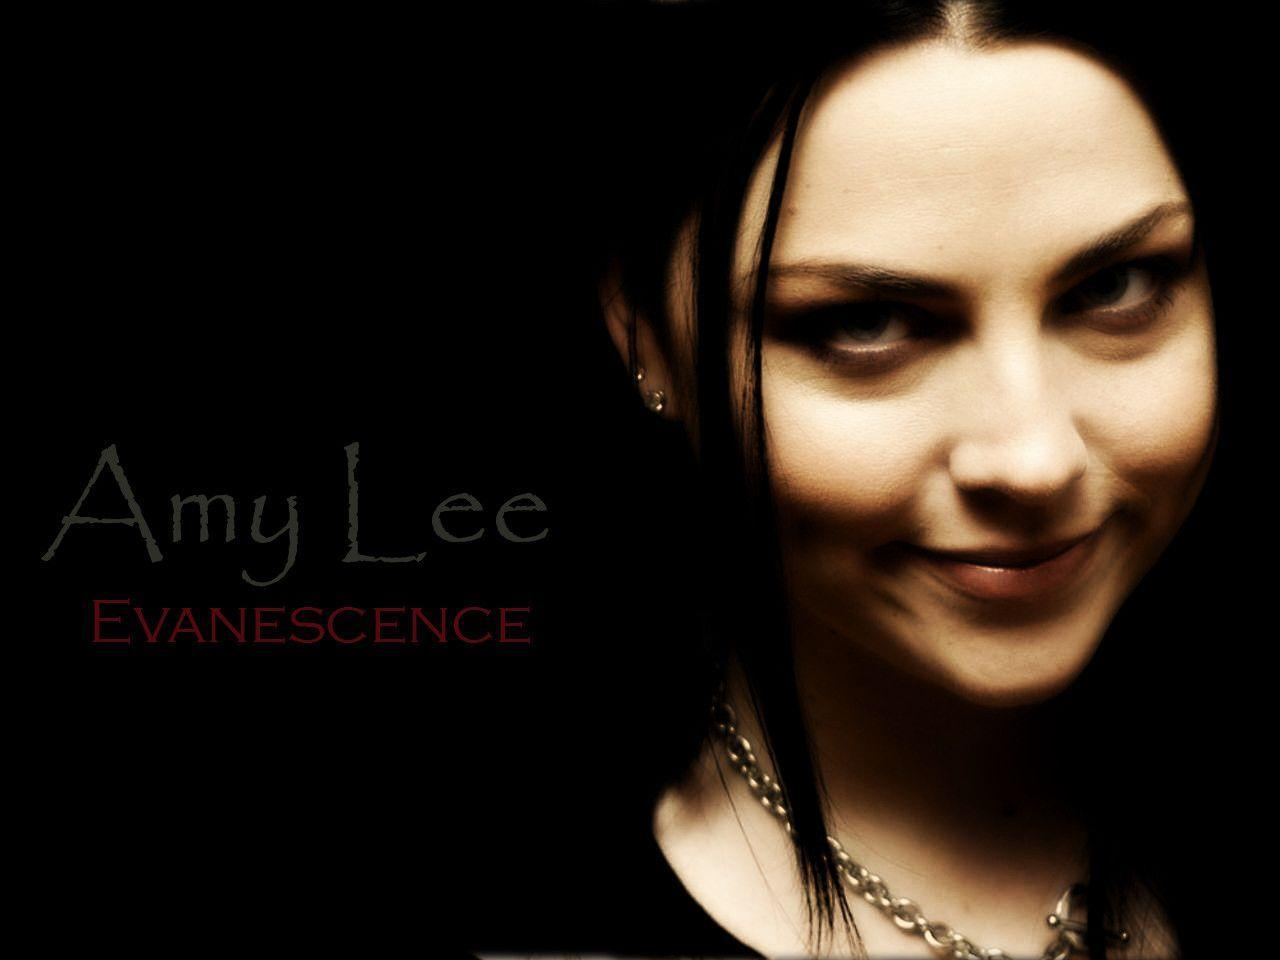 Evanescence 2016 Wallpapers 1280x960